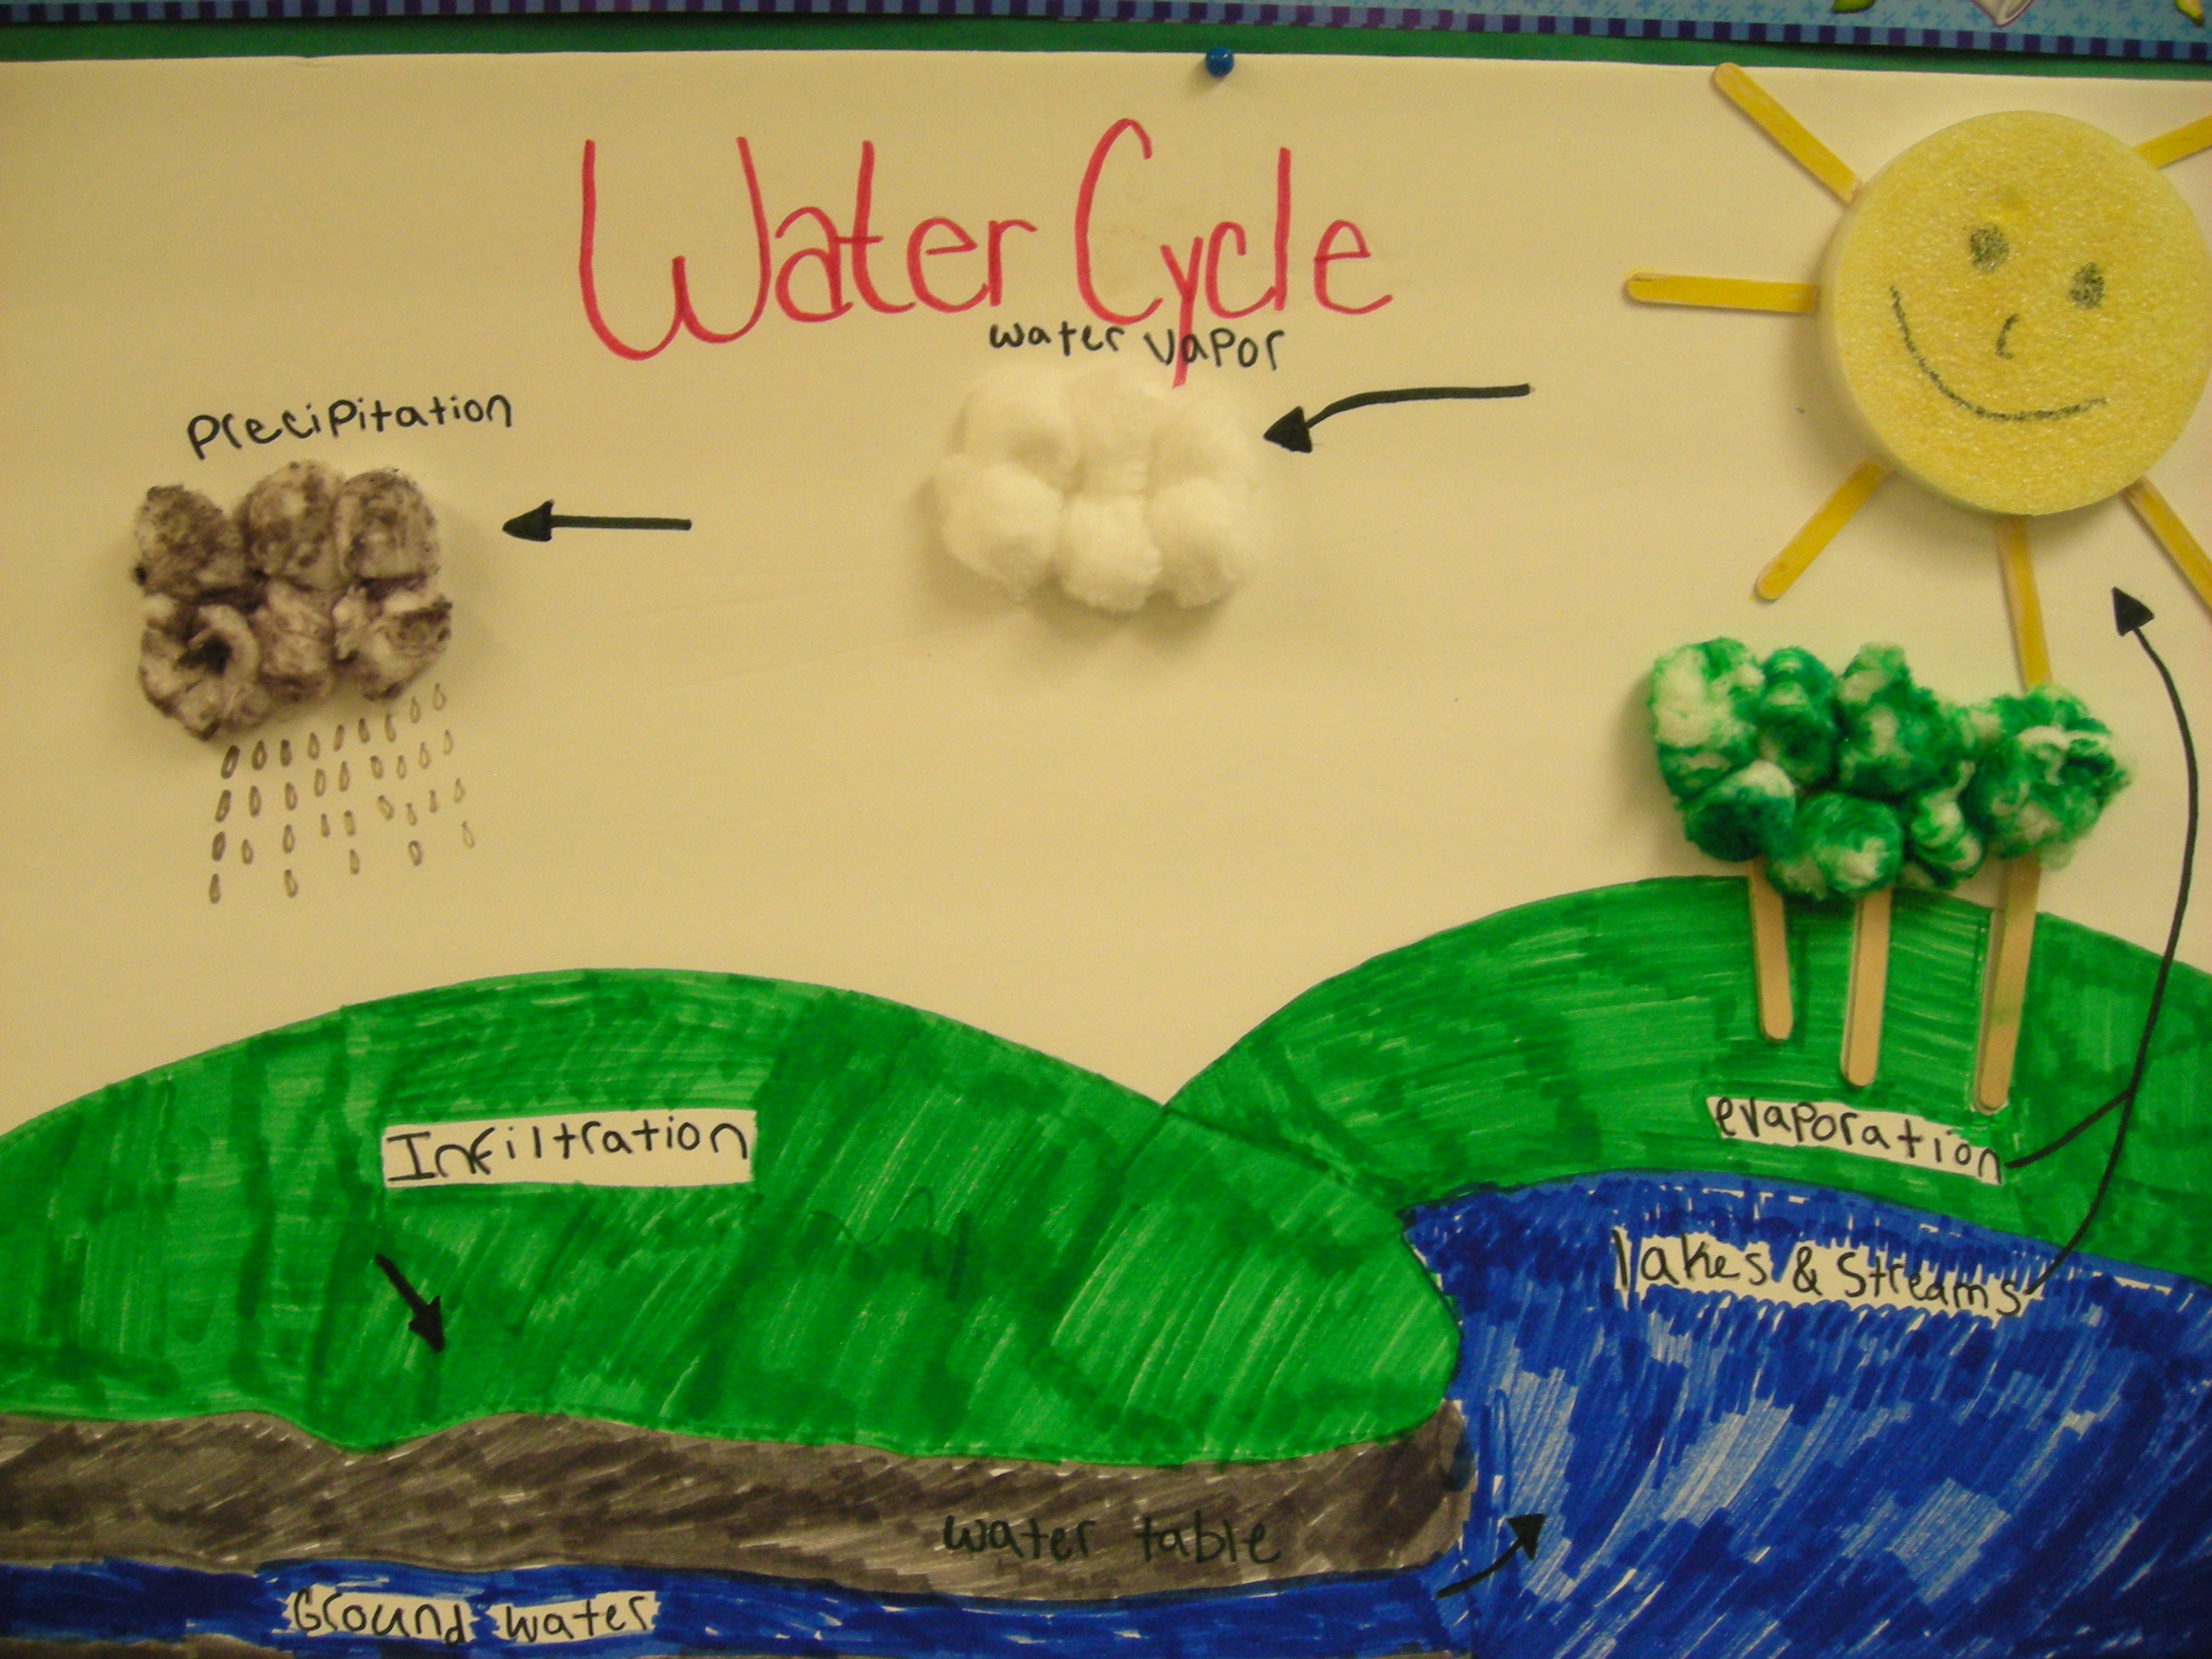 Water cycle poster project college paper help water cycle poster project ccuart Gallery